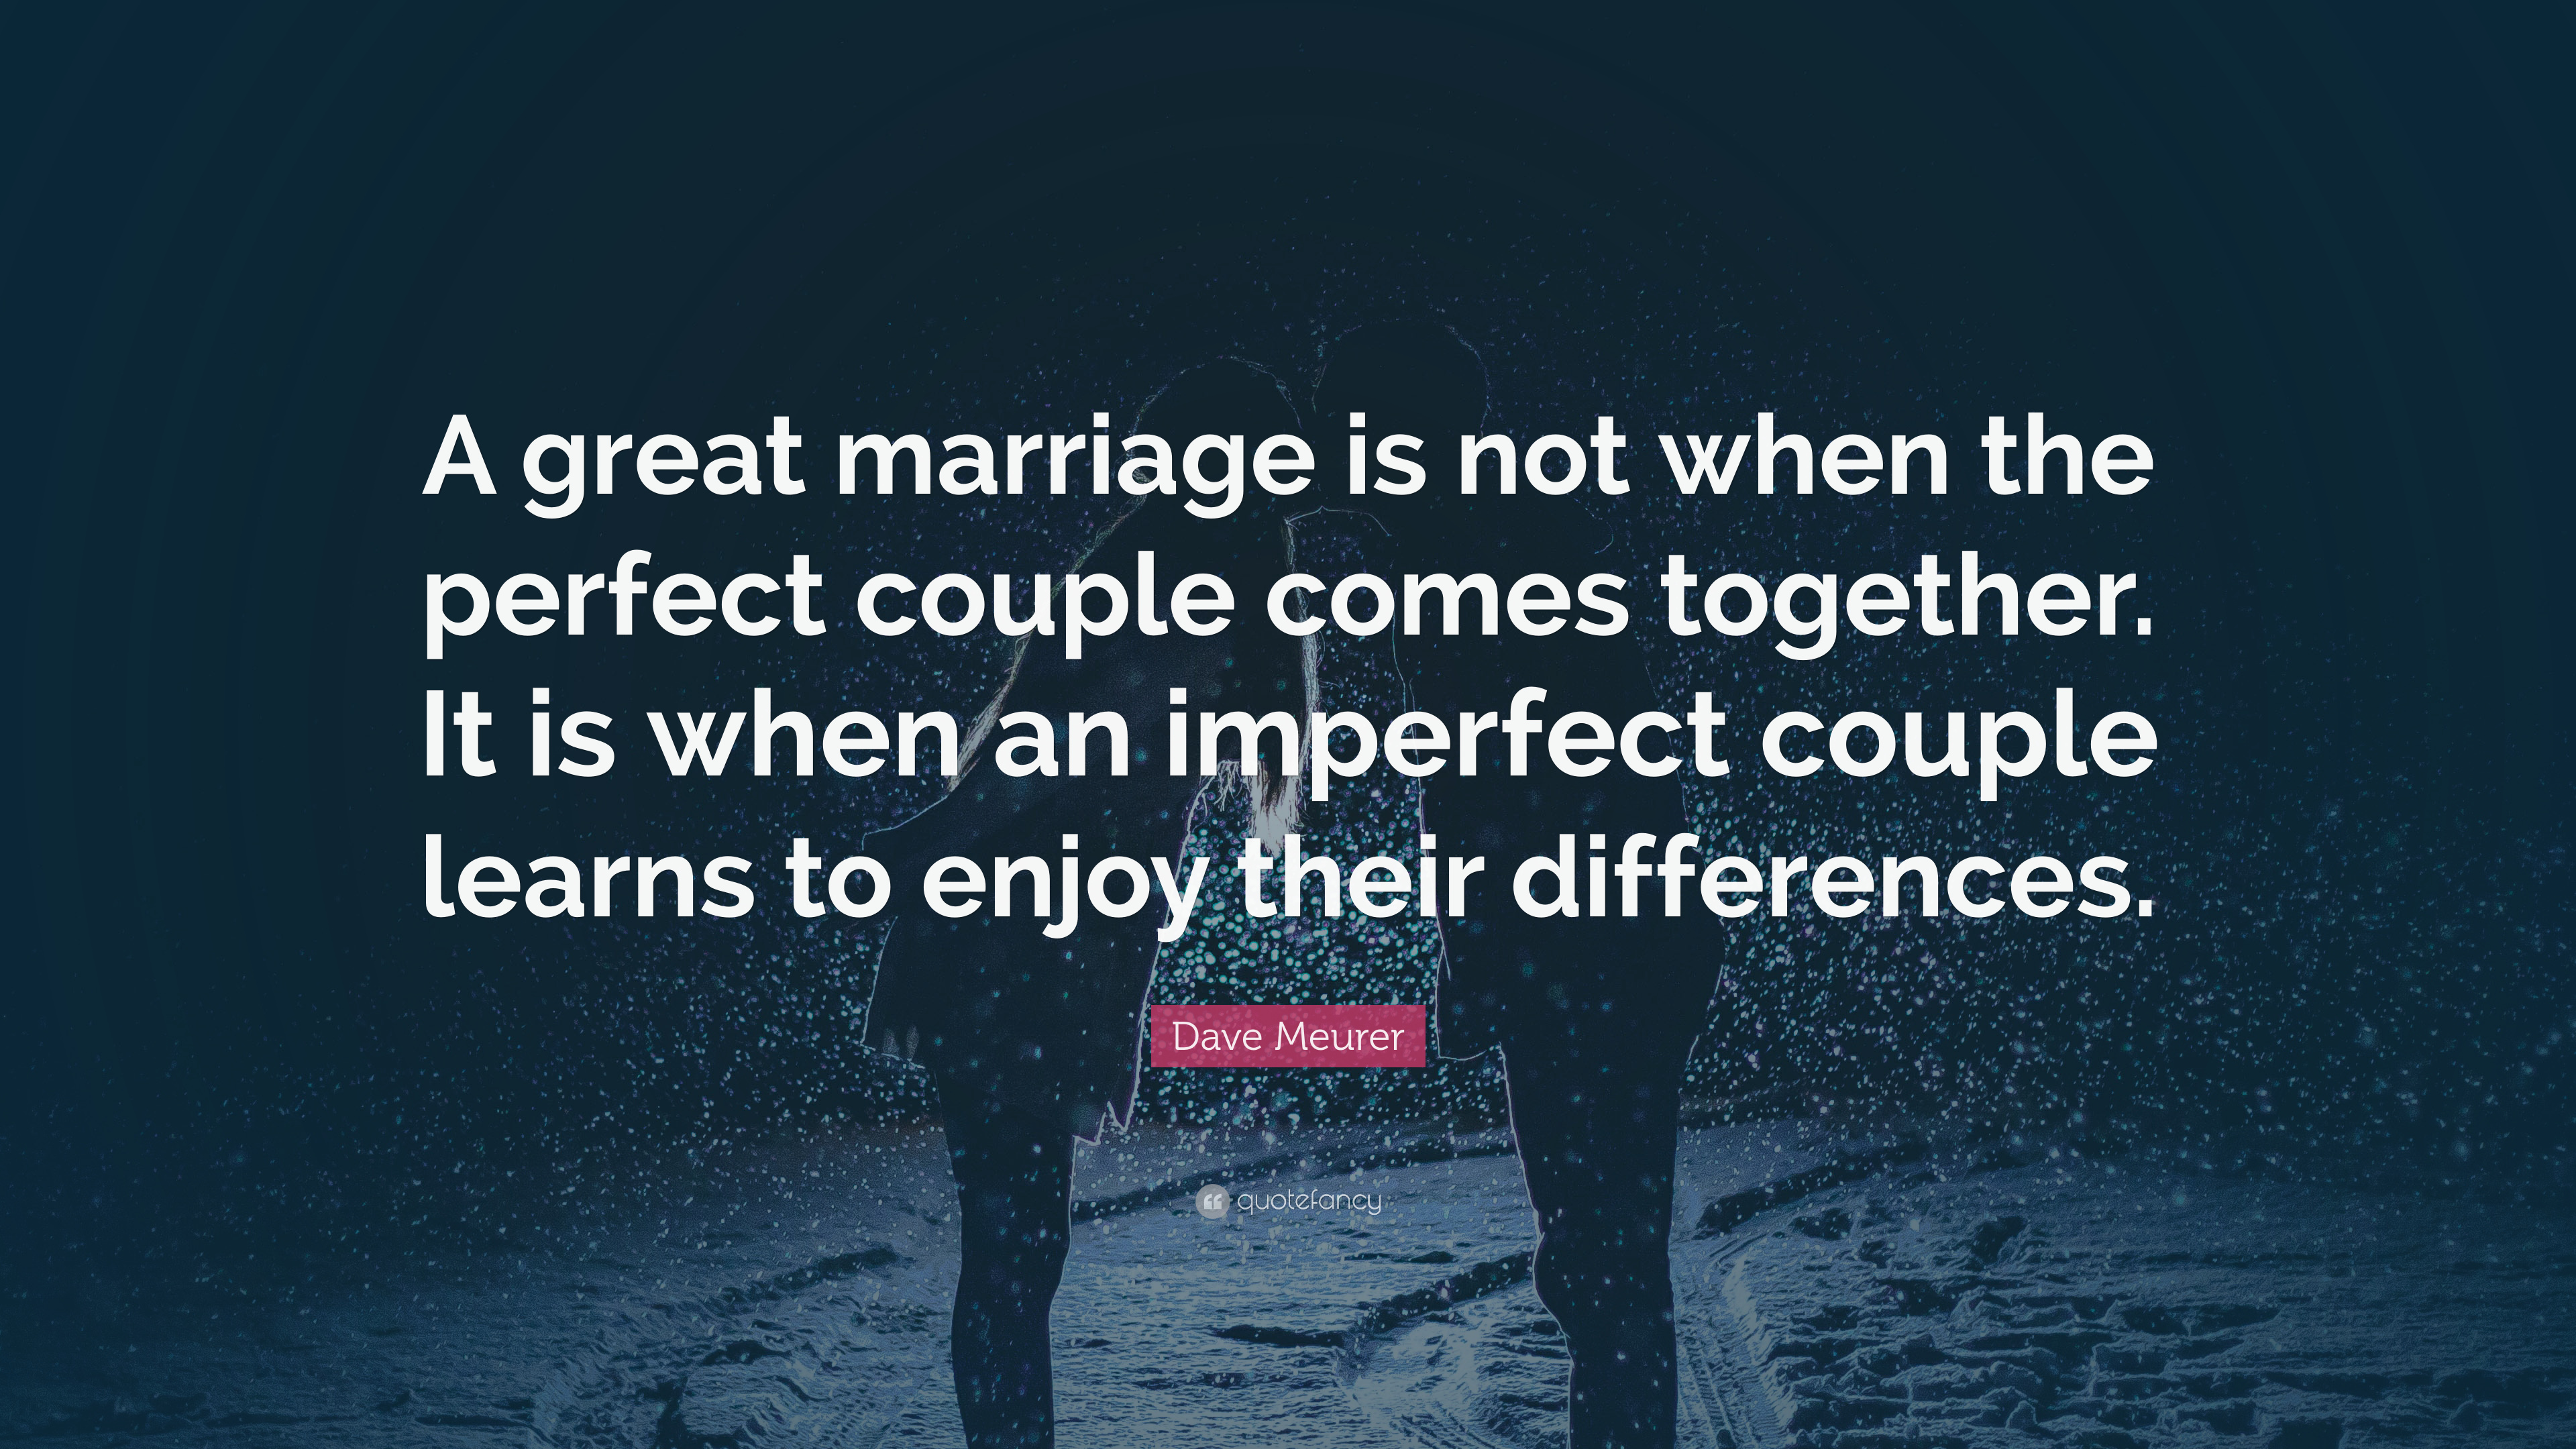 150 Greatest Love Quotes To Share With Your Special Someone